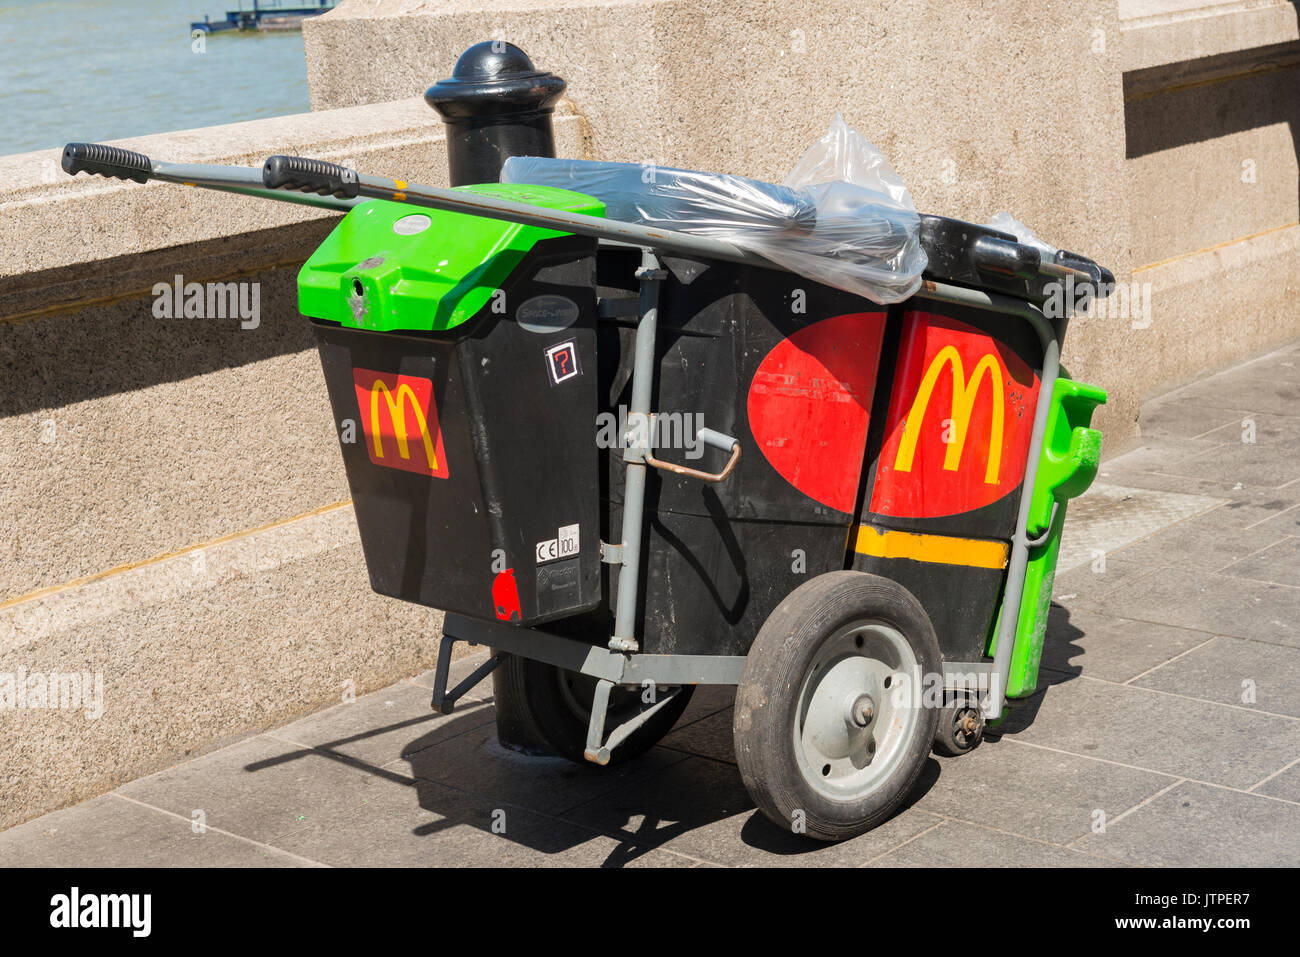 UK London Southbank McDonalds dust trash garbage rubbish litter cart trolley fast food cafe restaurant embankment water River Thames Keep Britain Tidy - Stock Image